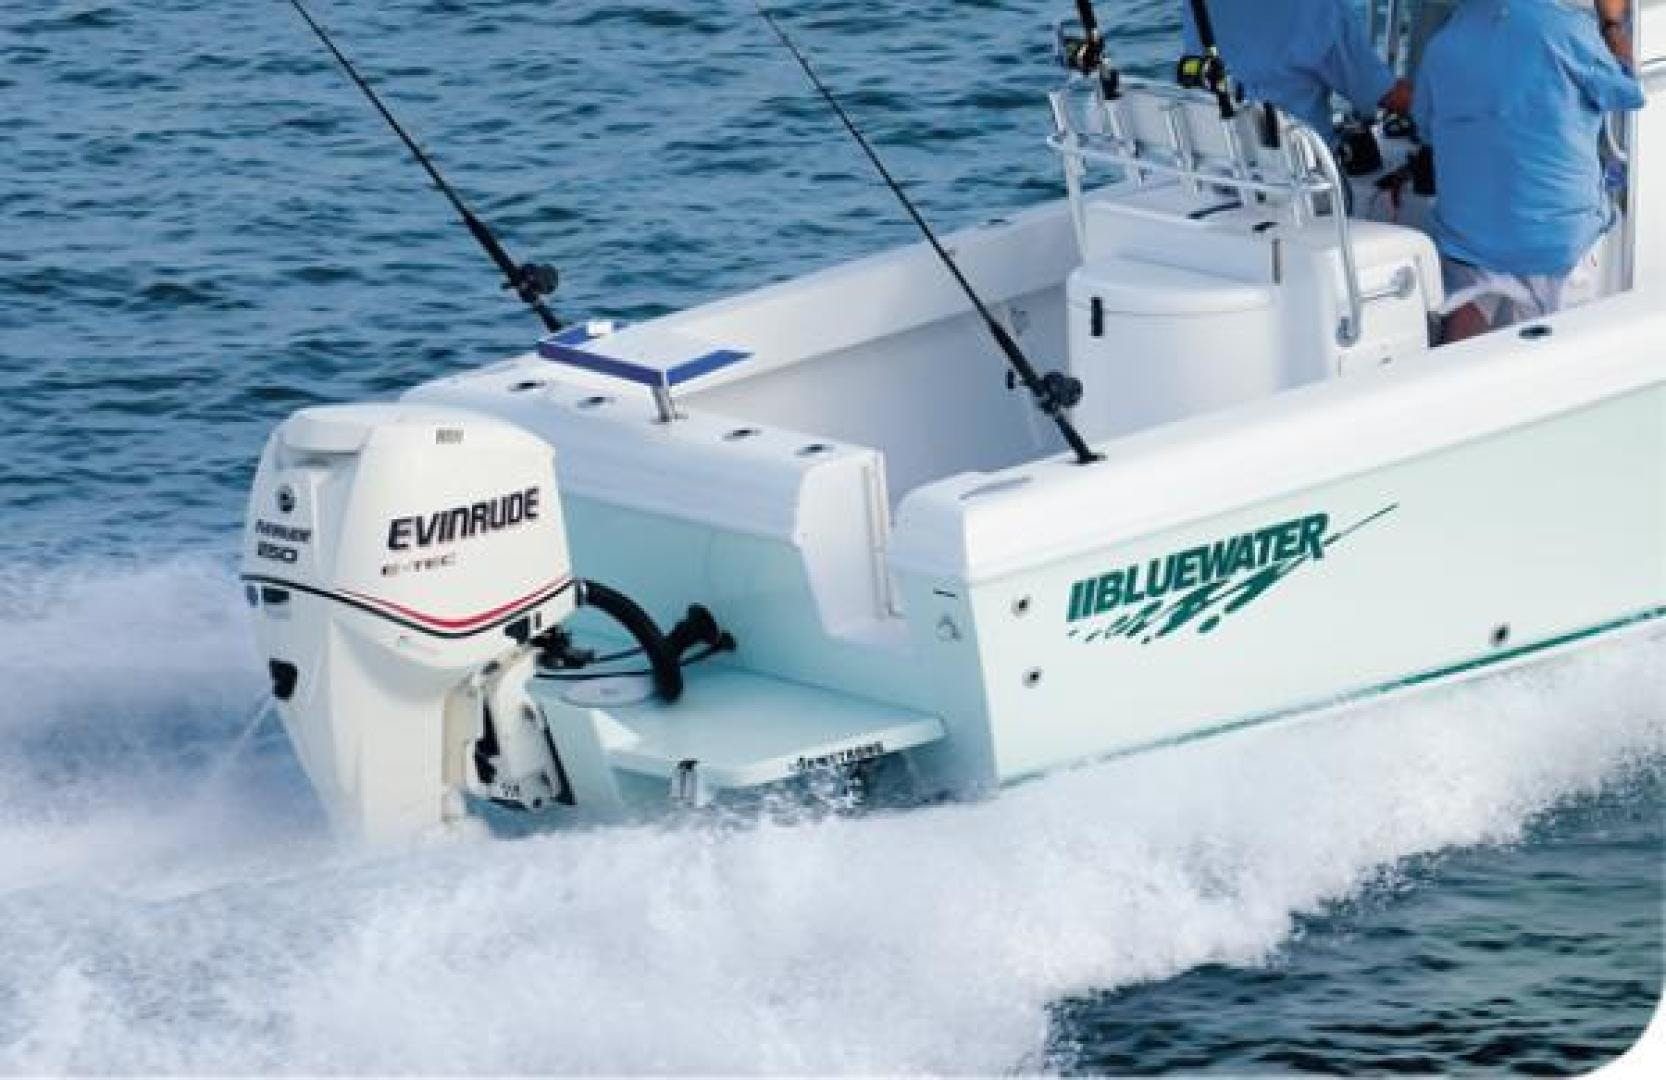 2020 Bluewater Sportfishing 22' 23t Bluewater Sportfishing 23t | Picture 7 of 7